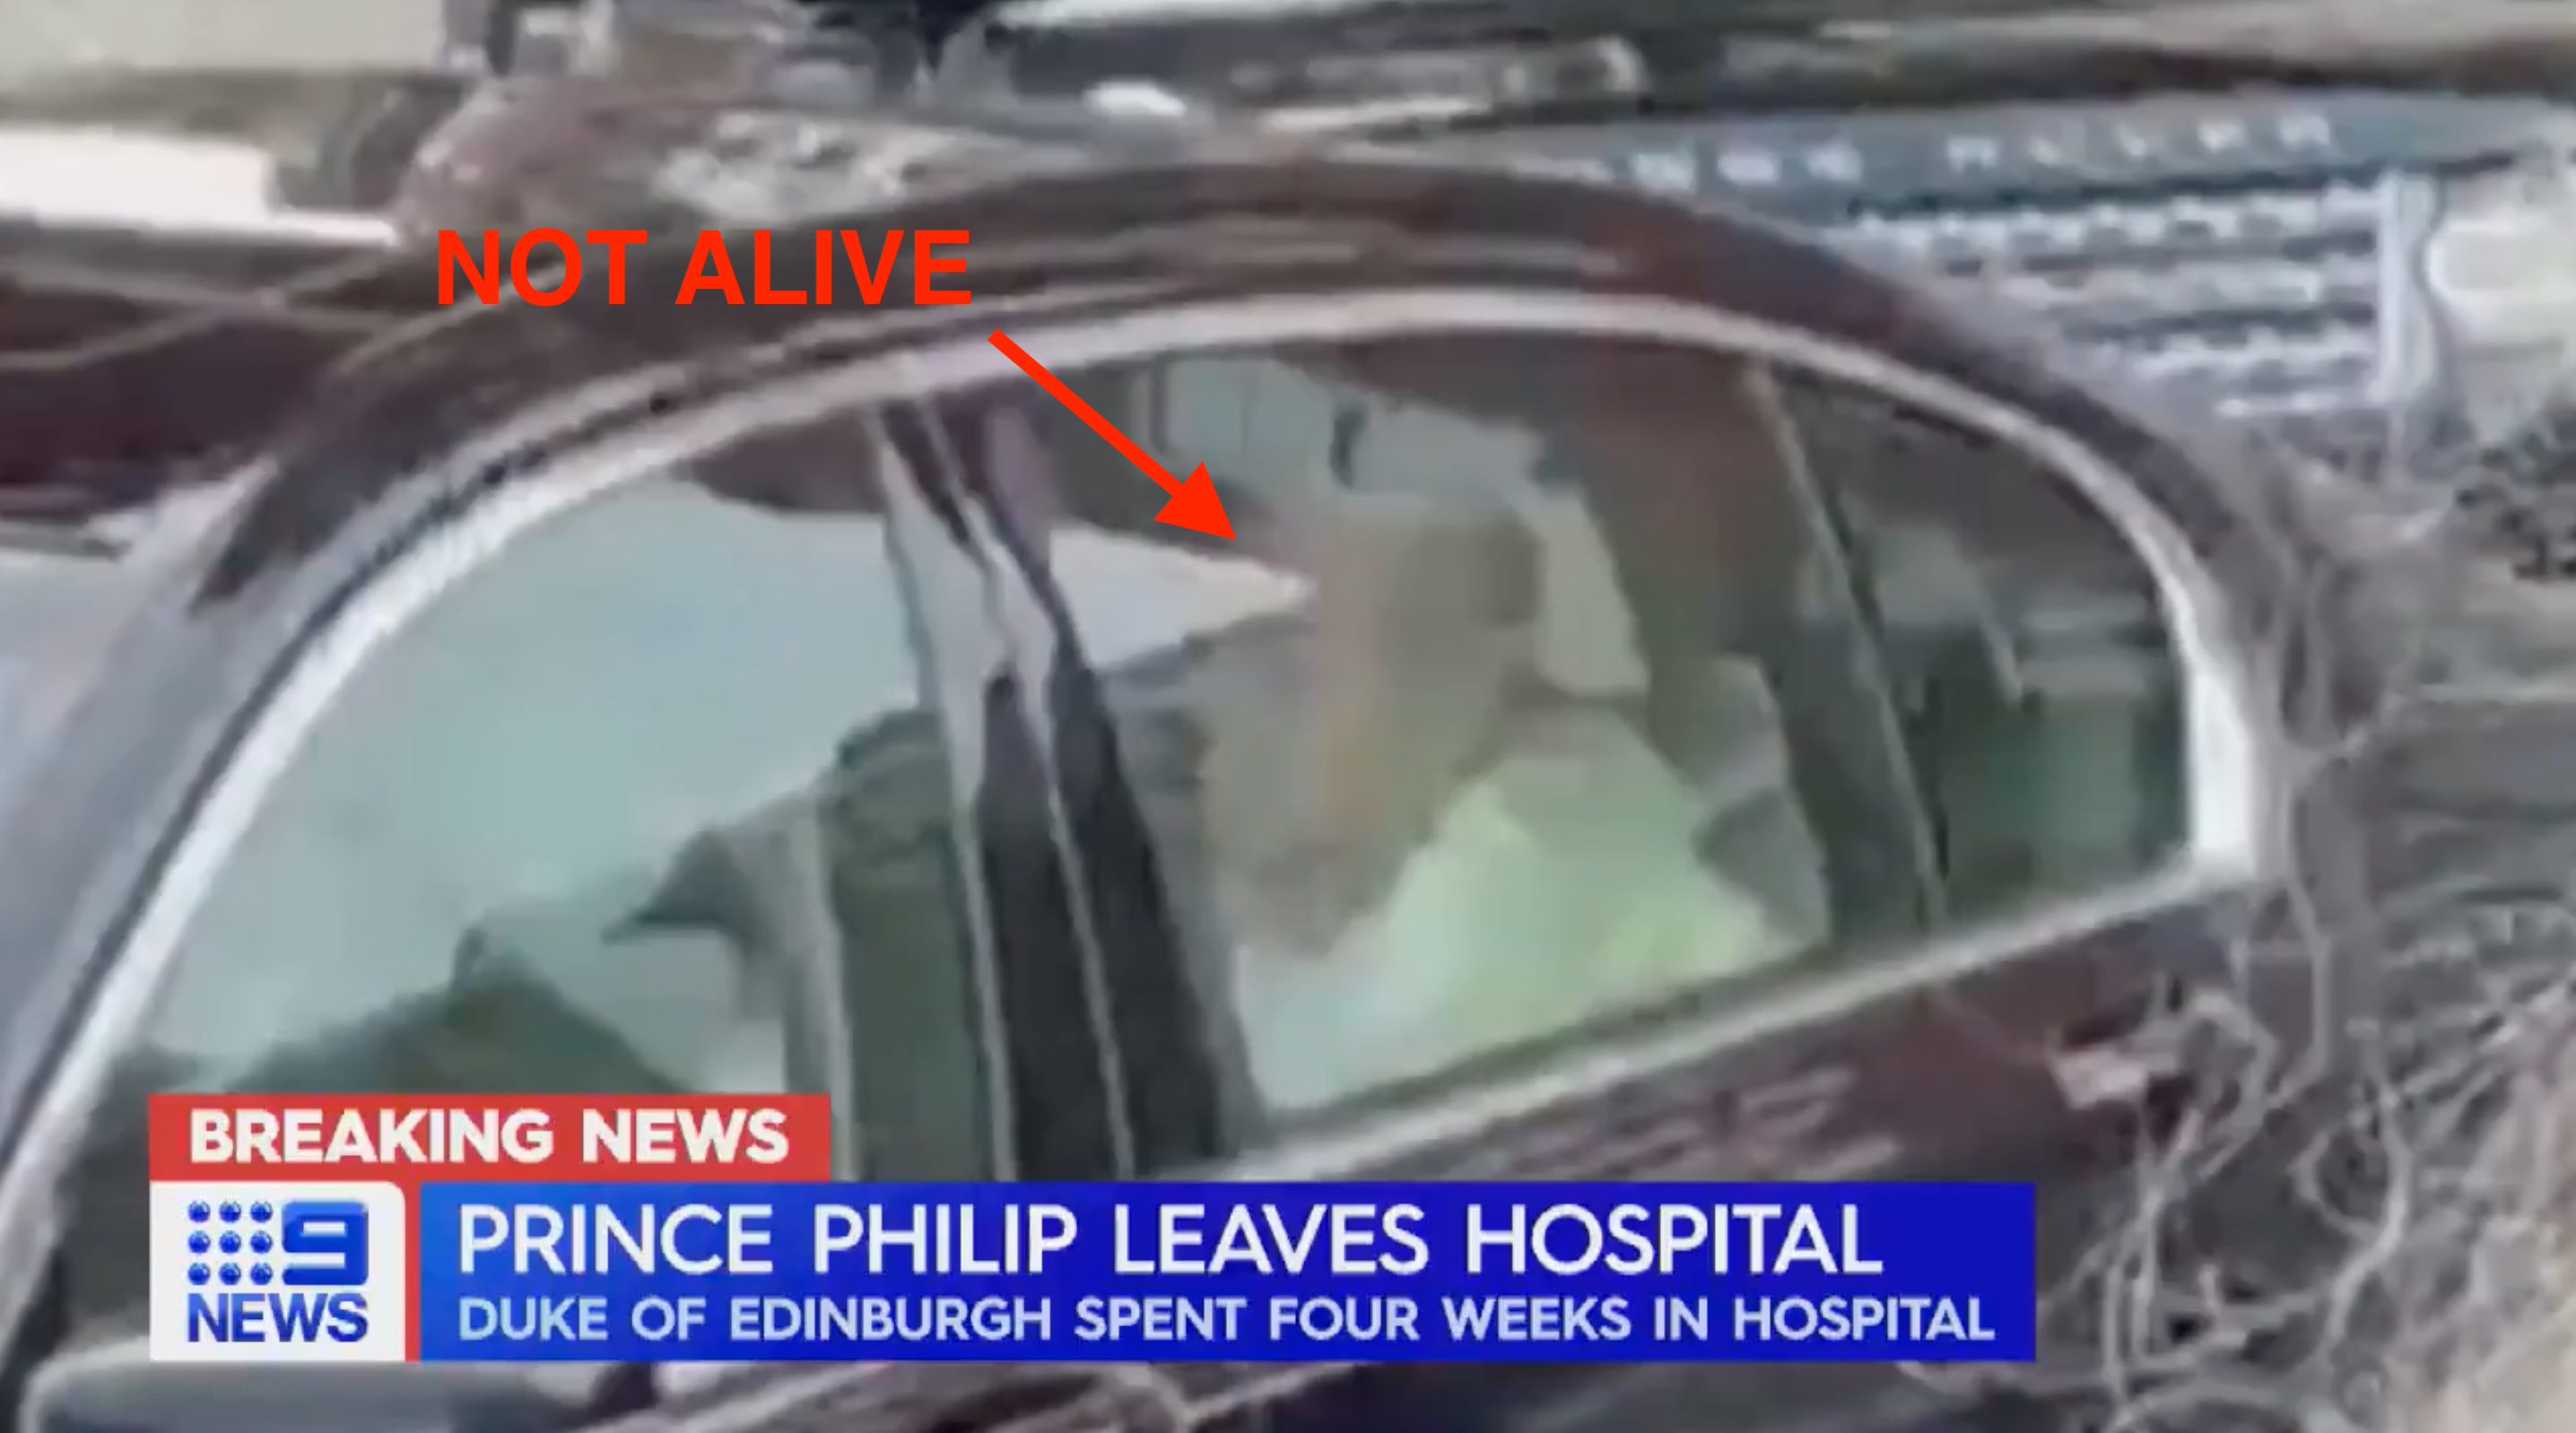 prince philip leaving the hospital